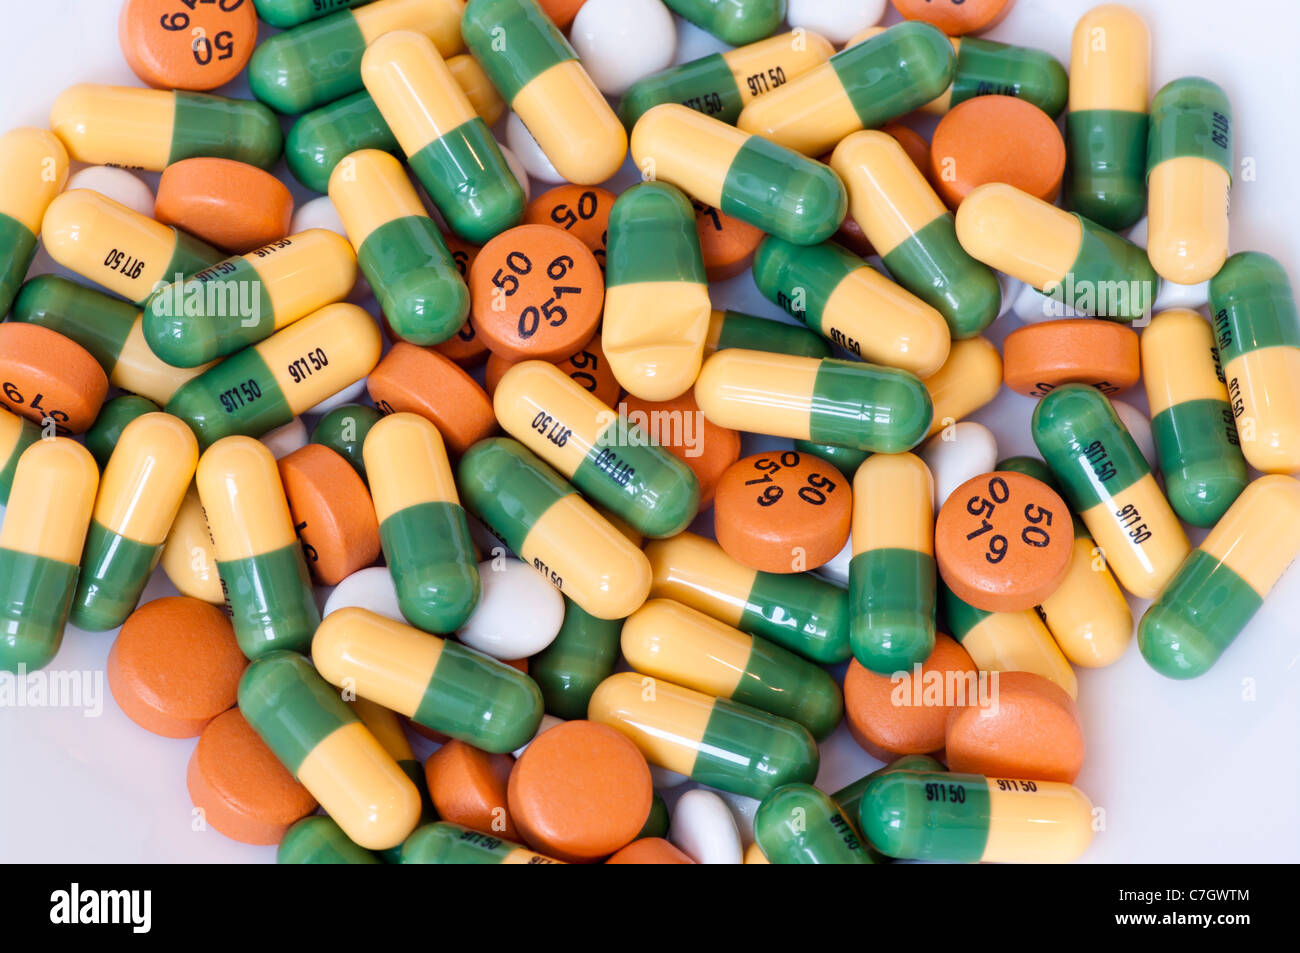 Pile Of Tramadol Hydrochloride Capsules Diclofenac Sodium Tablets And Buscapan Painkillers addictive prescription - Stock Image